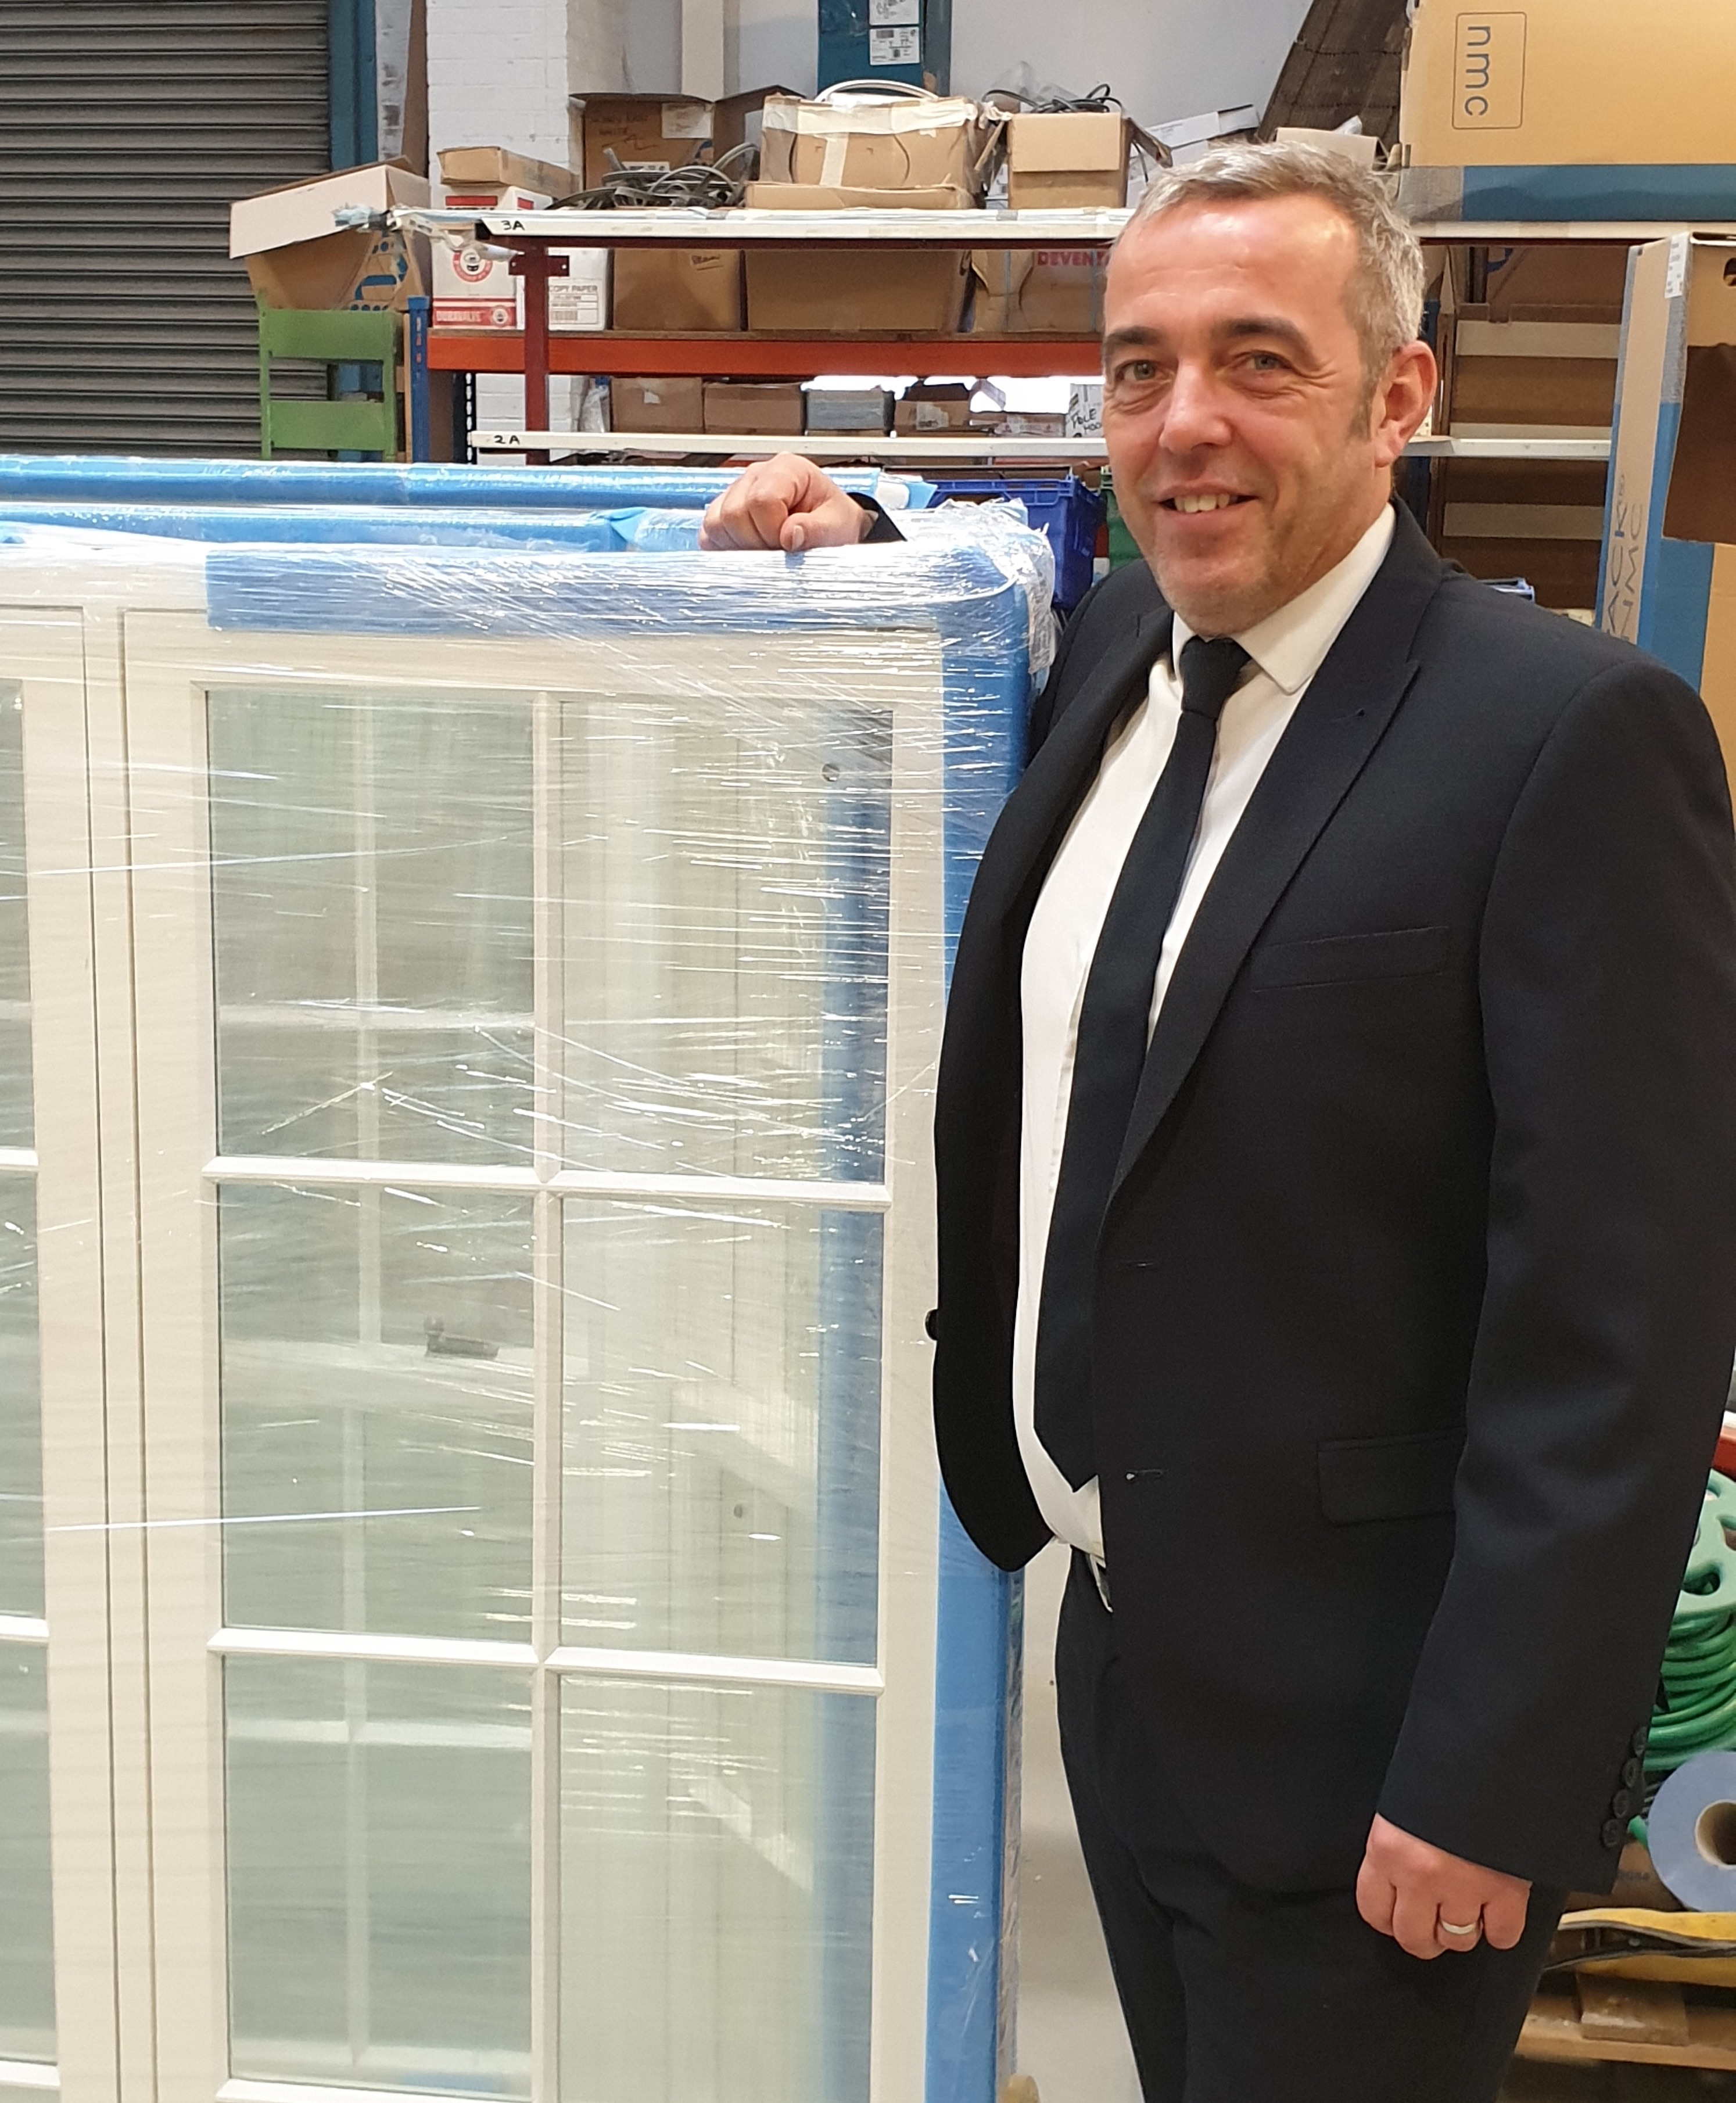 Joe Grimley, Commercial Sales Manager At